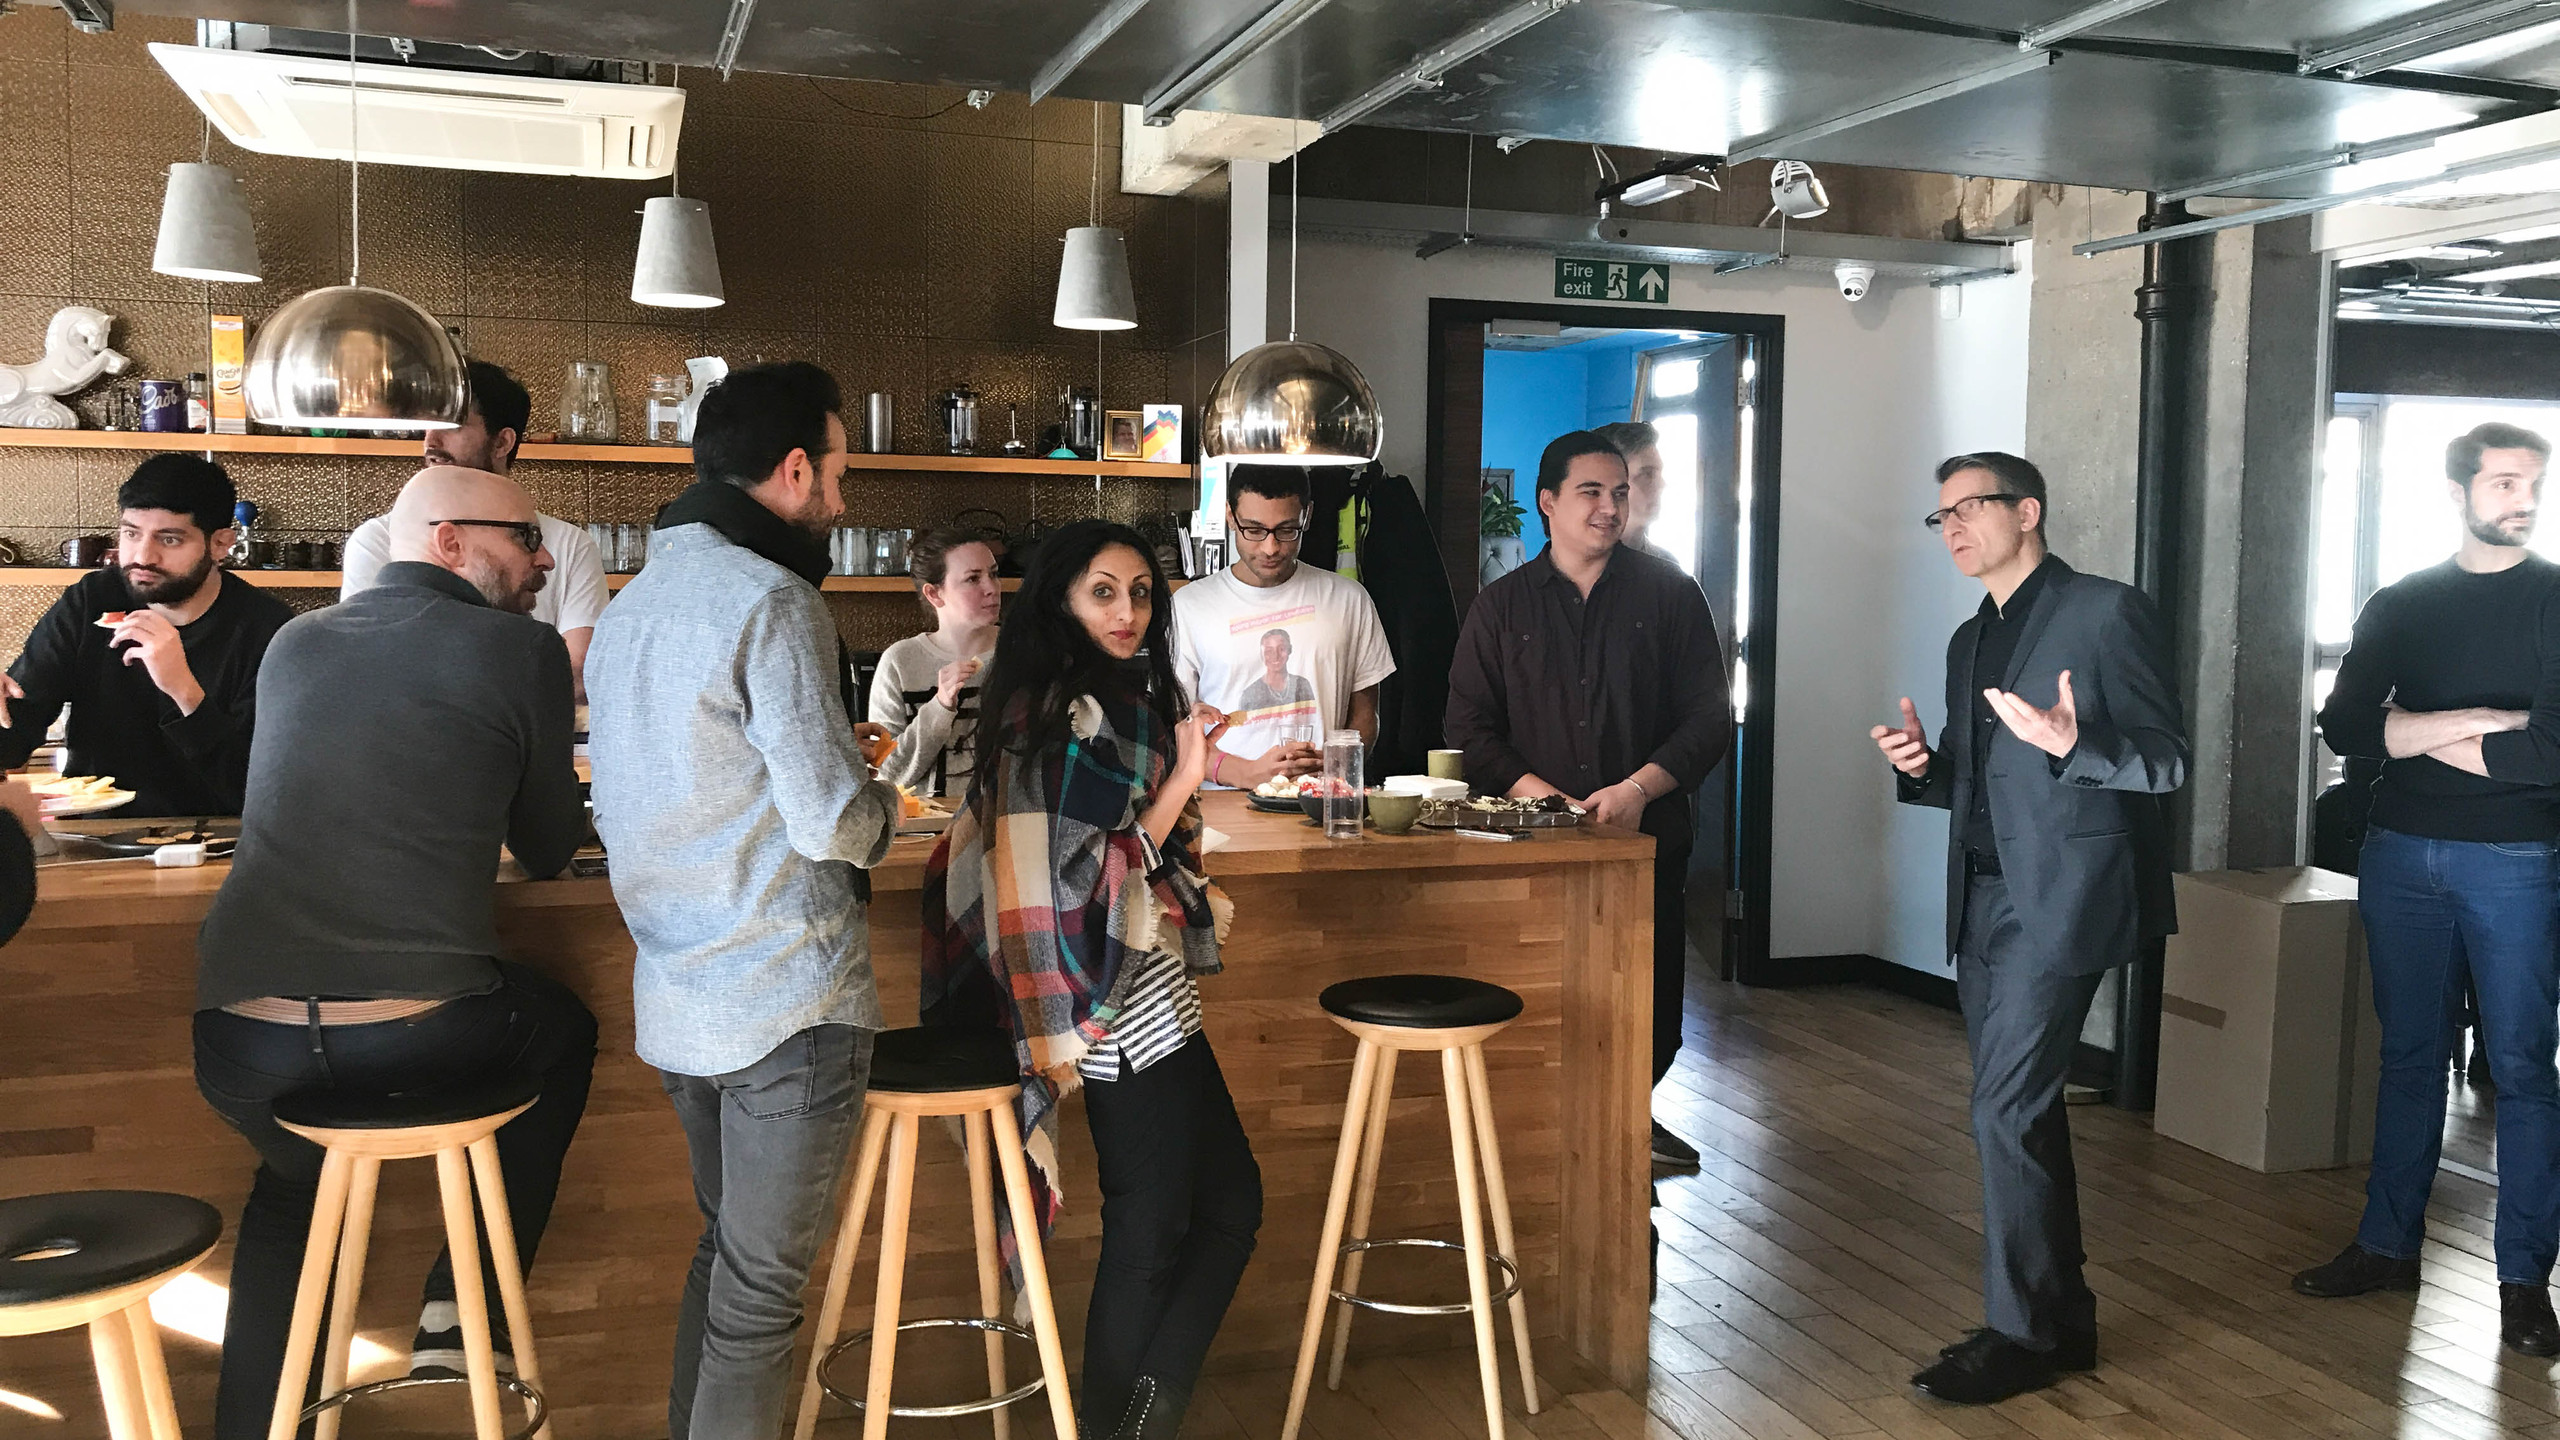 Mingling with local entrepreneurs